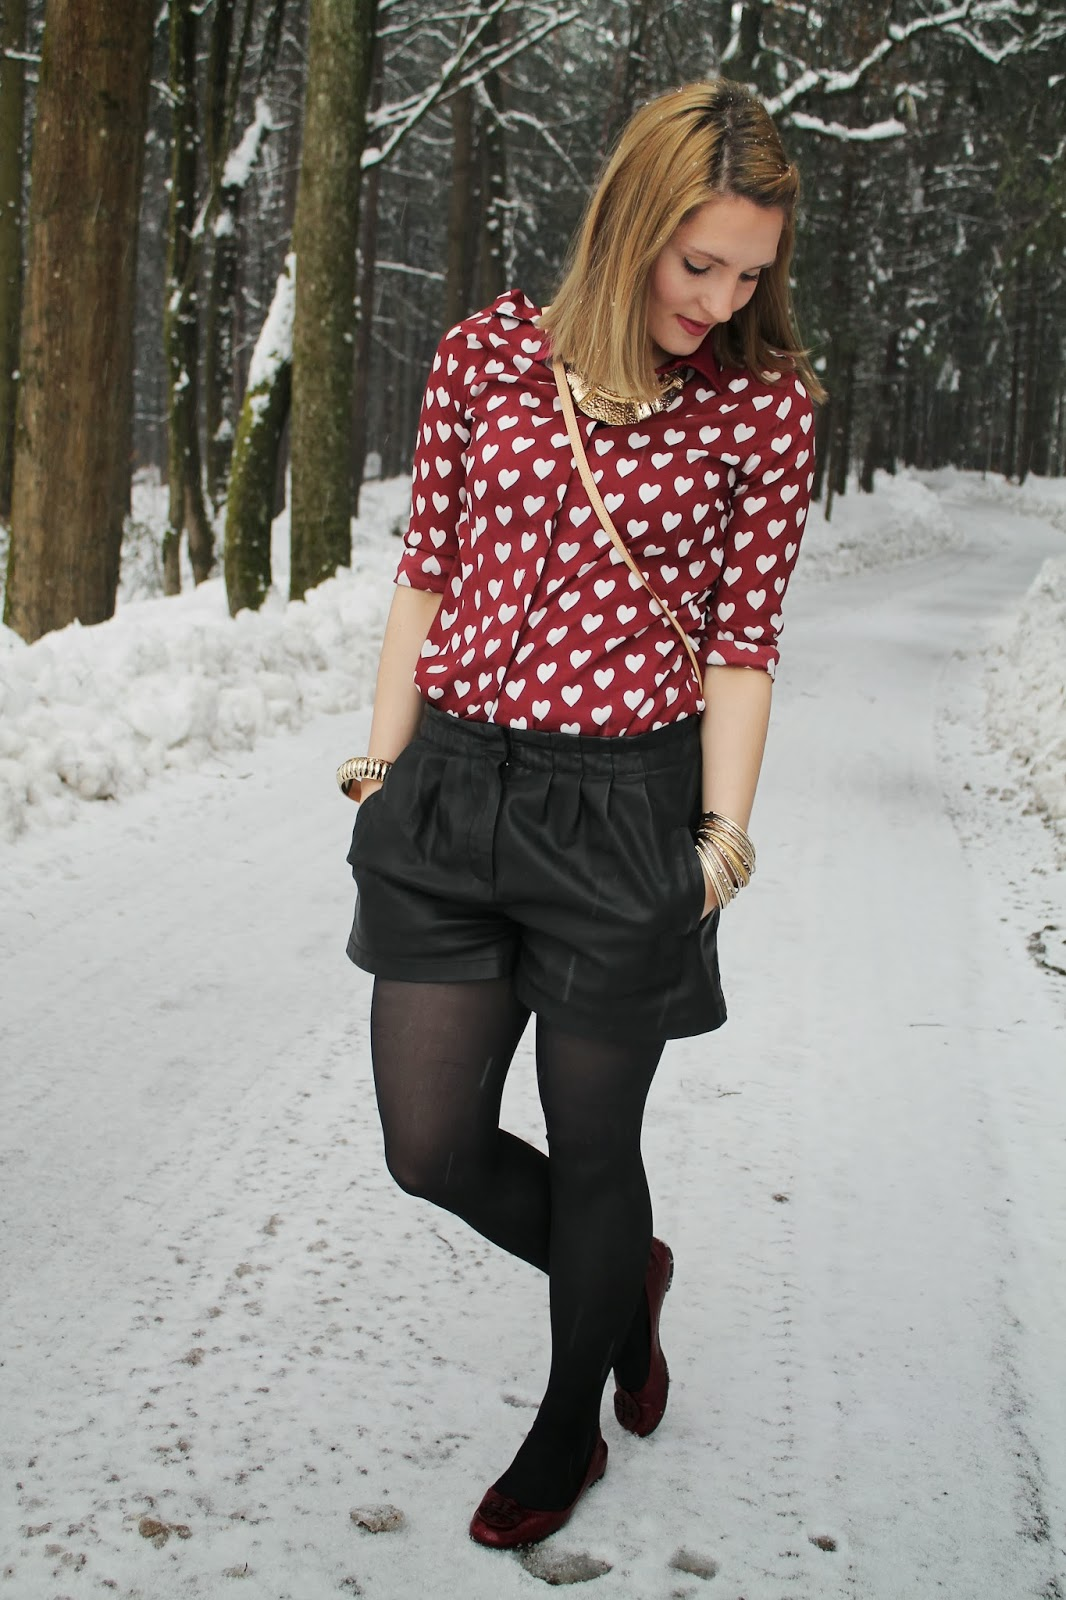 Fashion Blogger Kärnten Carinthia Austria Österreich Klagenfurt Persunmall Hearts Blouse Statementkette Statement Necklace Golden Accessoires Winter look Winter Fashion Style Fashionblogger Louis Vuitton Pochette Accessoires Tory Burch Flats Ballerinas